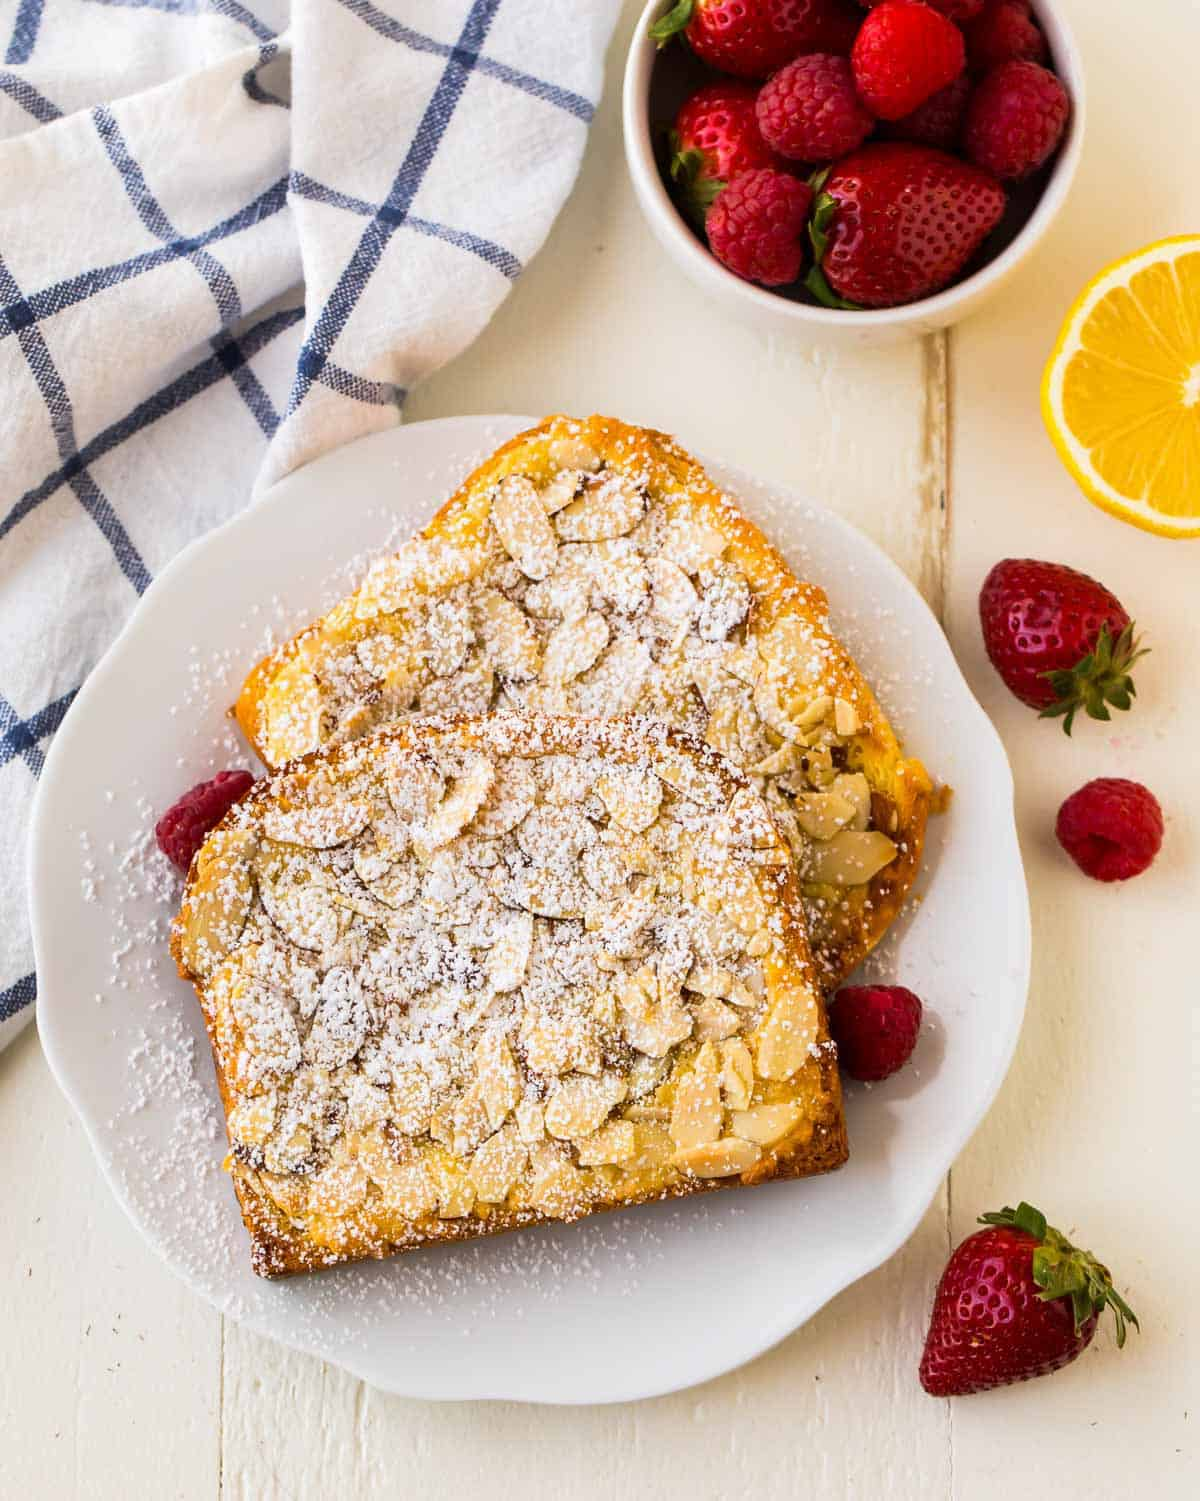 Thick slices of brioche bread topped with almond-lemon frangipane and baked to create a homemade version of bostock, a French pastry.